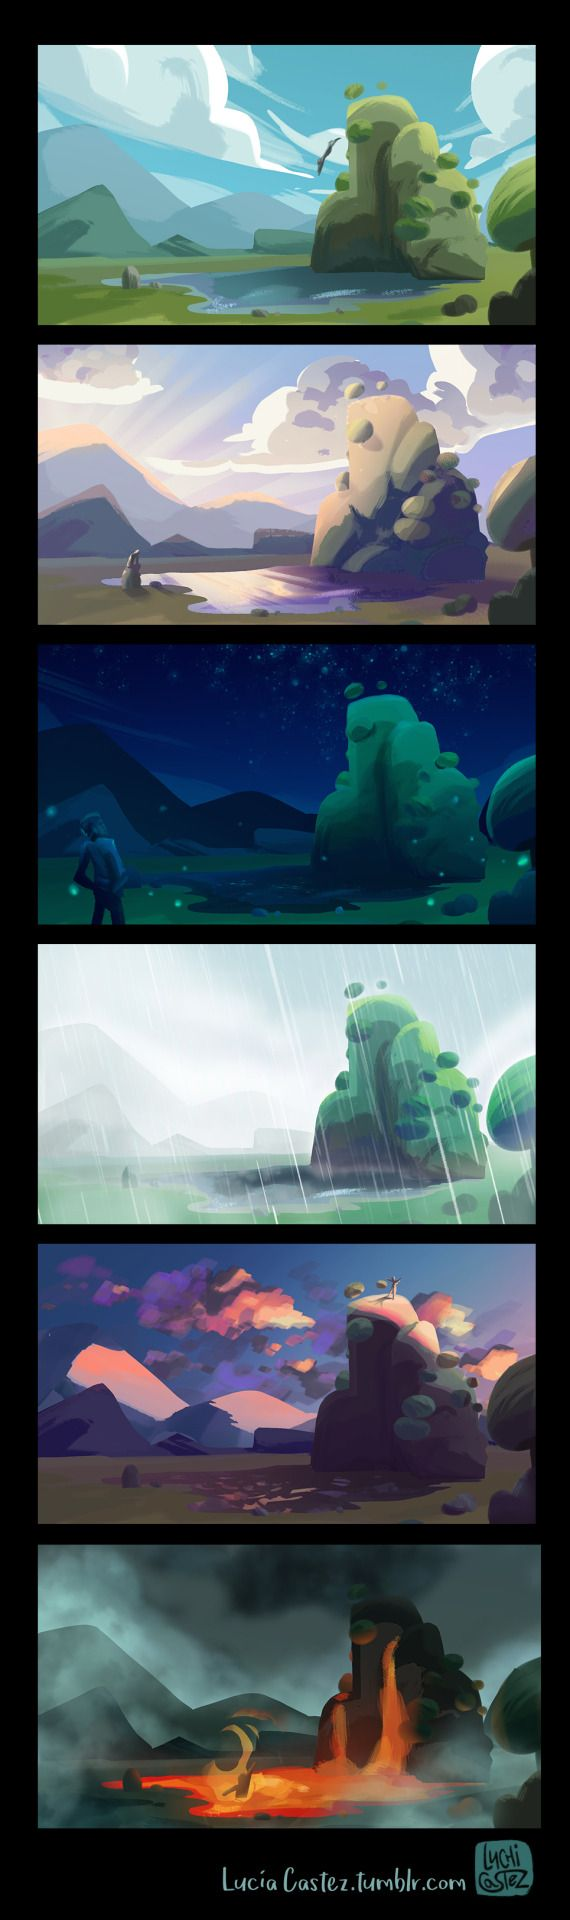 Some quick studies of color and light